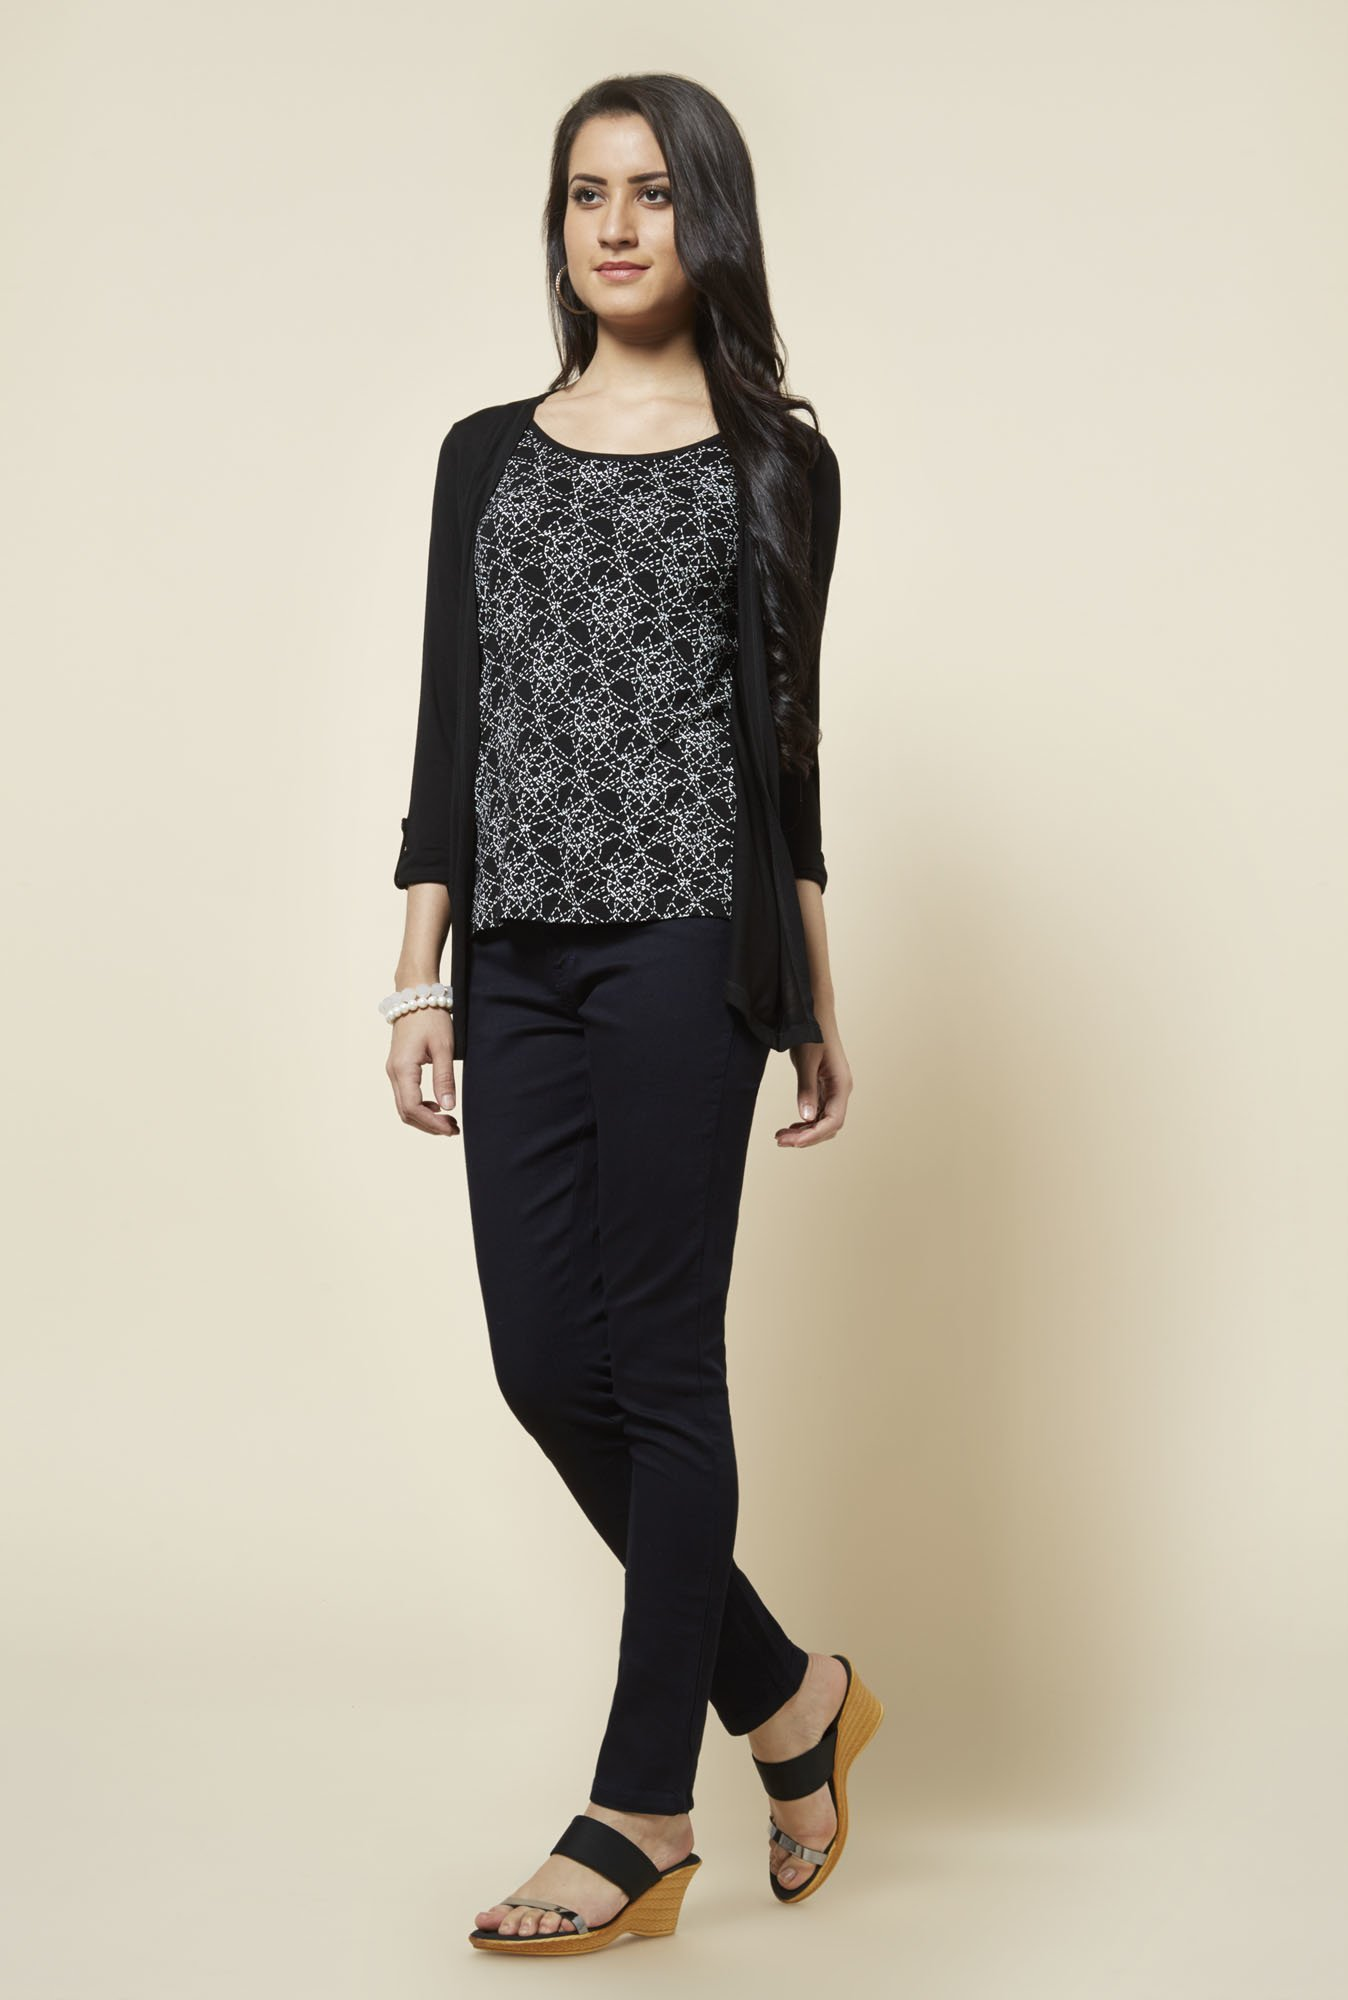 Zudio Black Bonie Printed Top